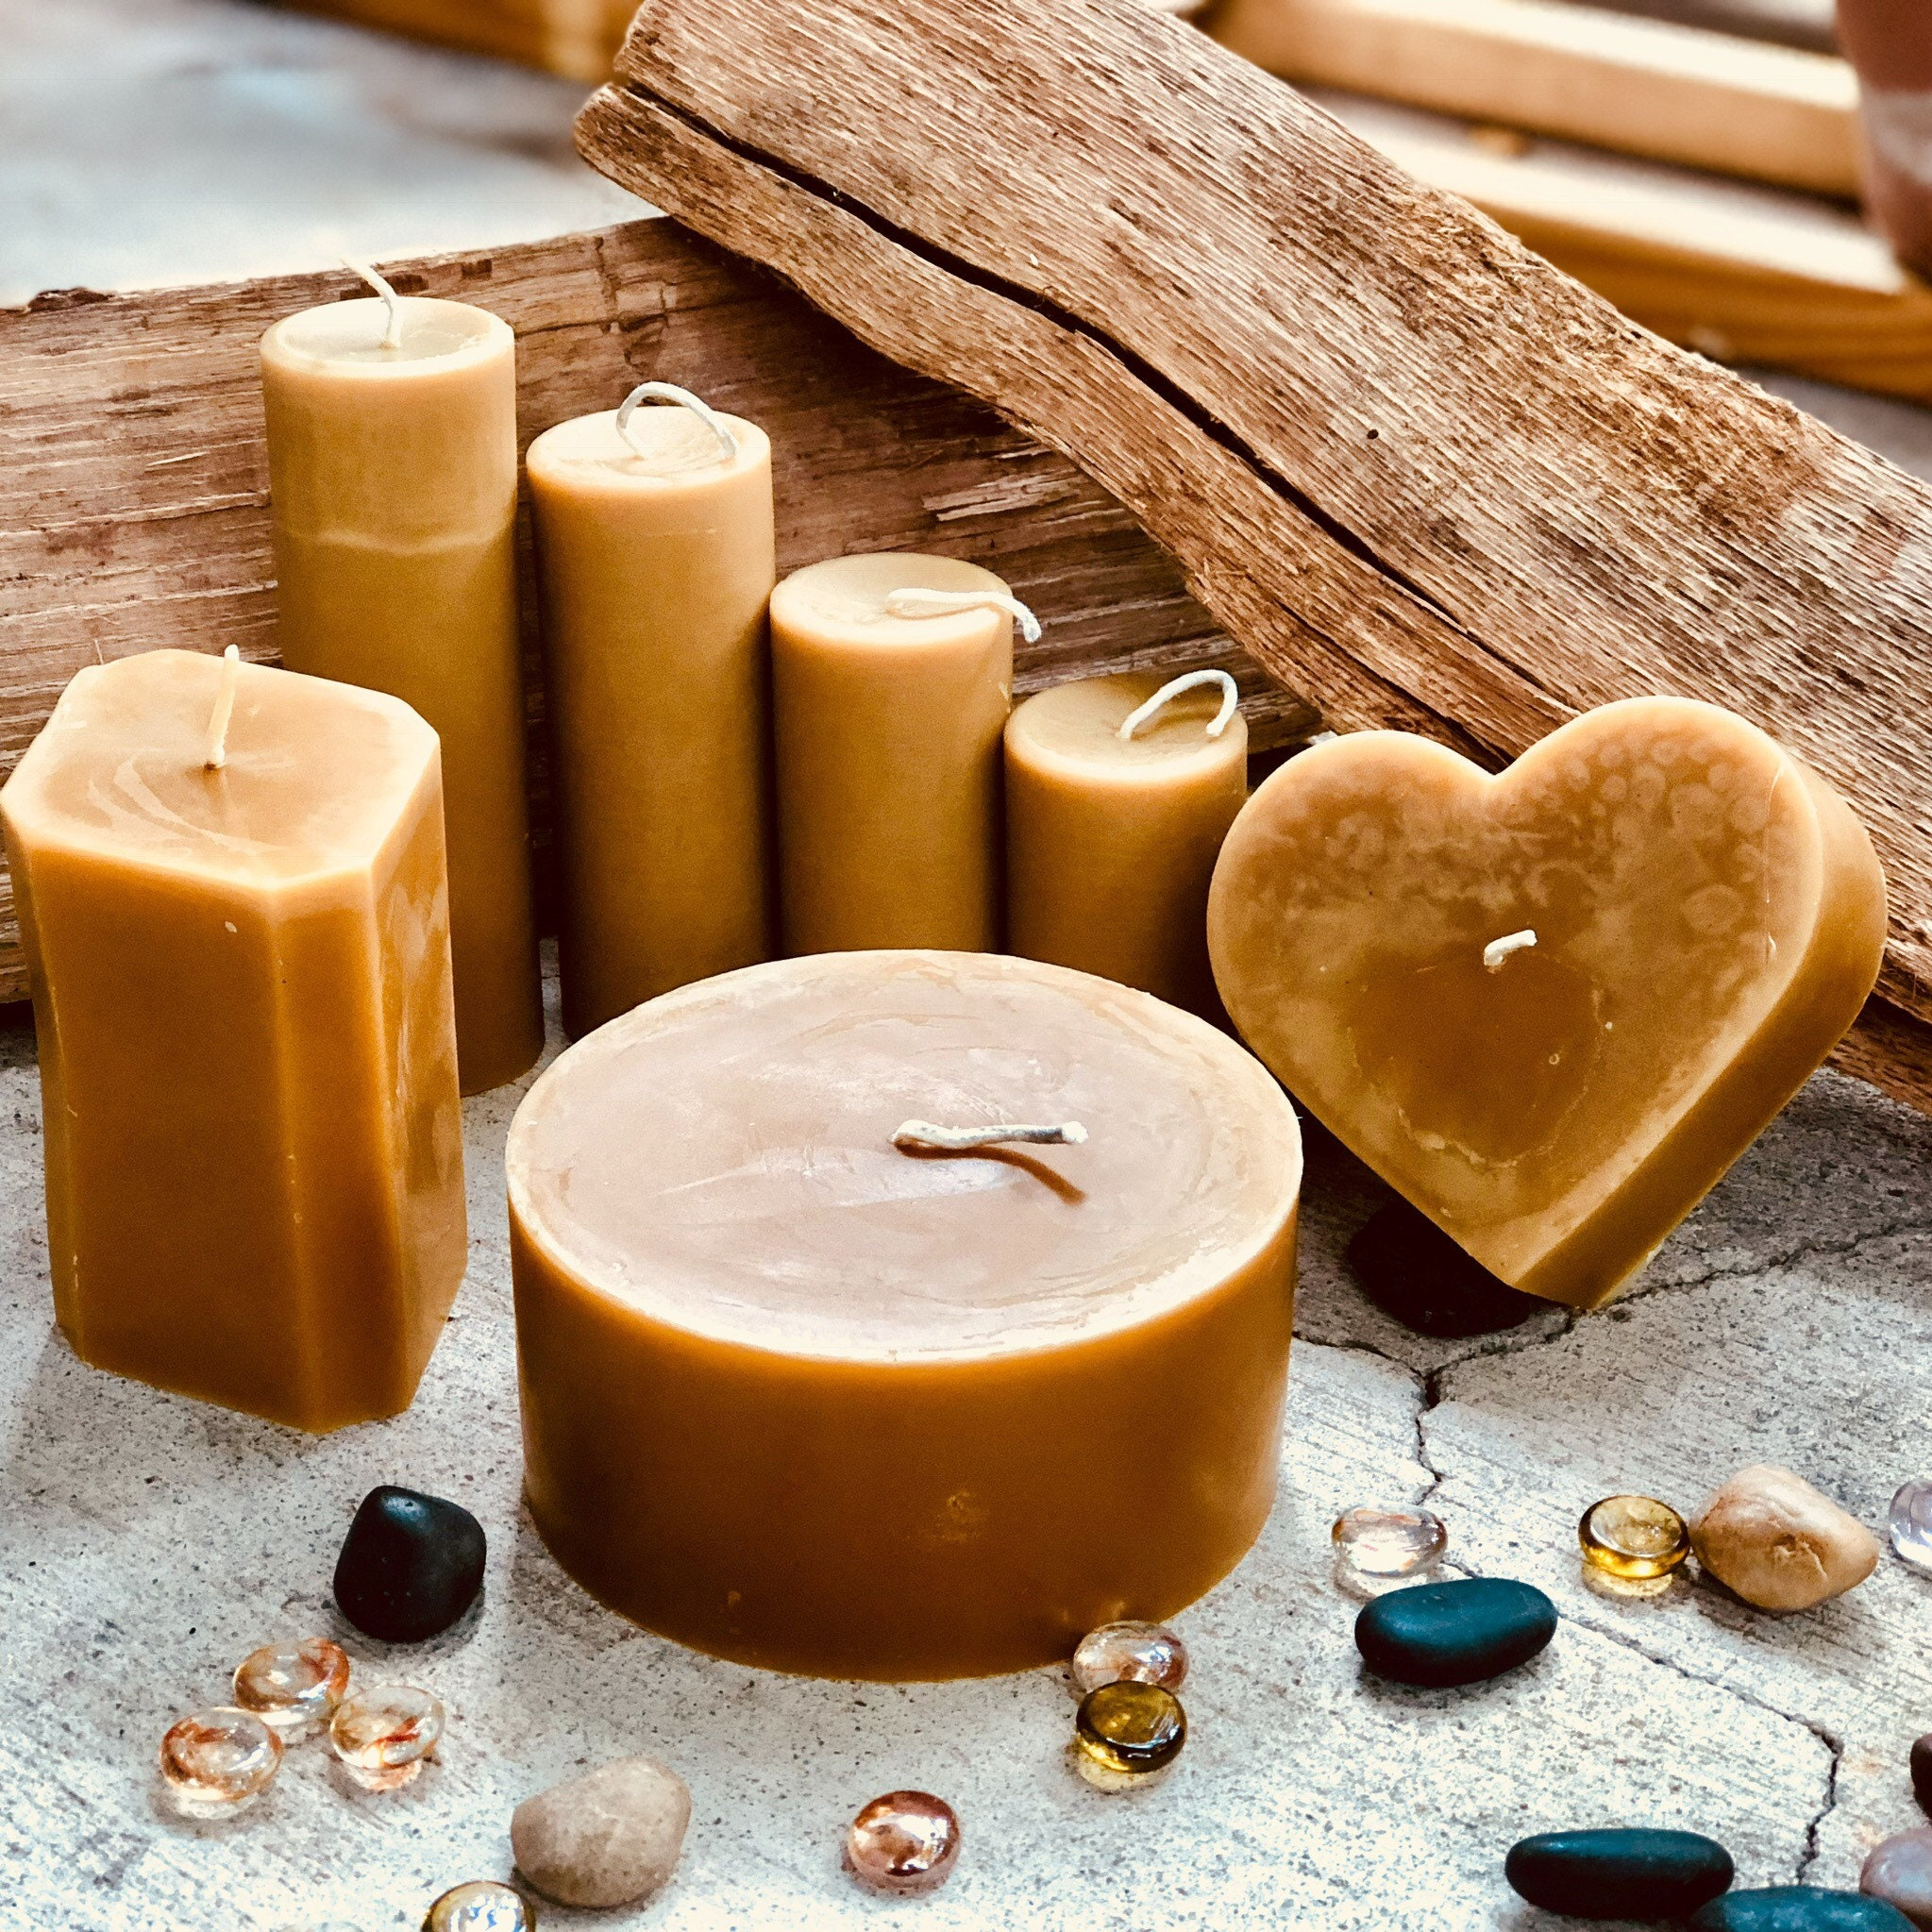 100% Pure Beeswax Pillar Candle-large 5.5inch wide Beeswax ...